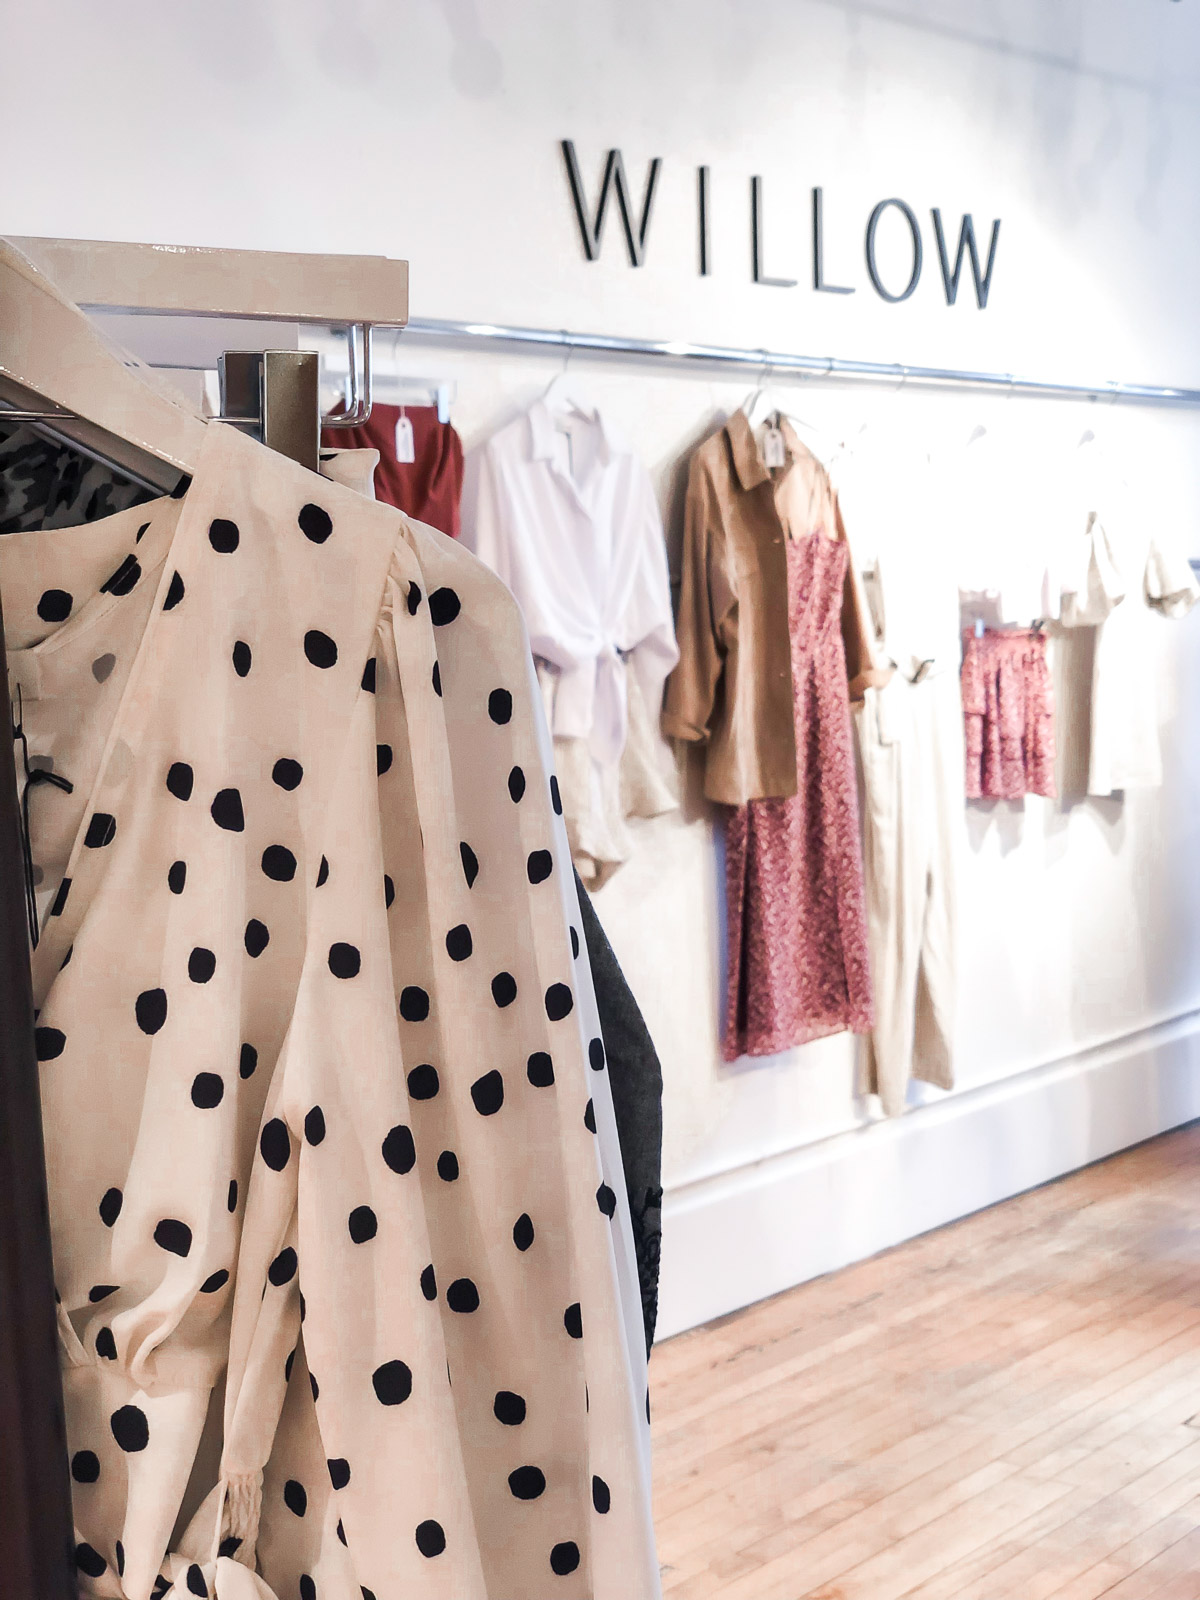 willow & clay showroom